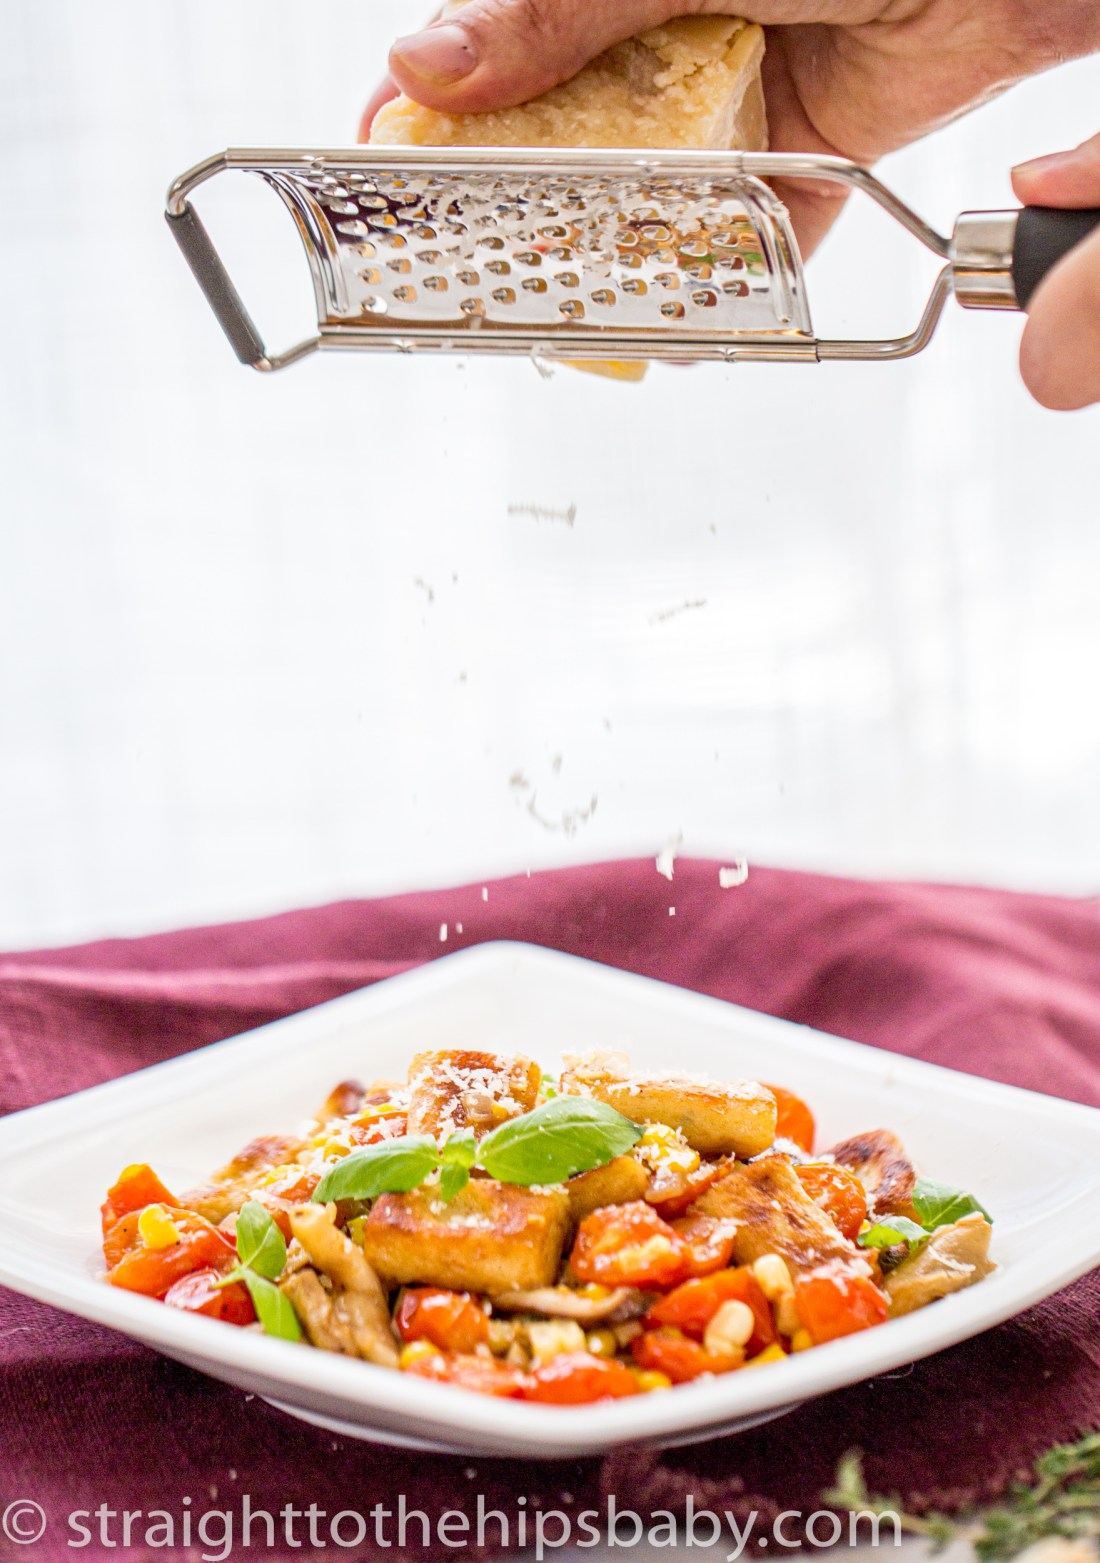 grating fresh parmesan cheese over a plate of colorful fresh potato gnocchi with late summer vegetables